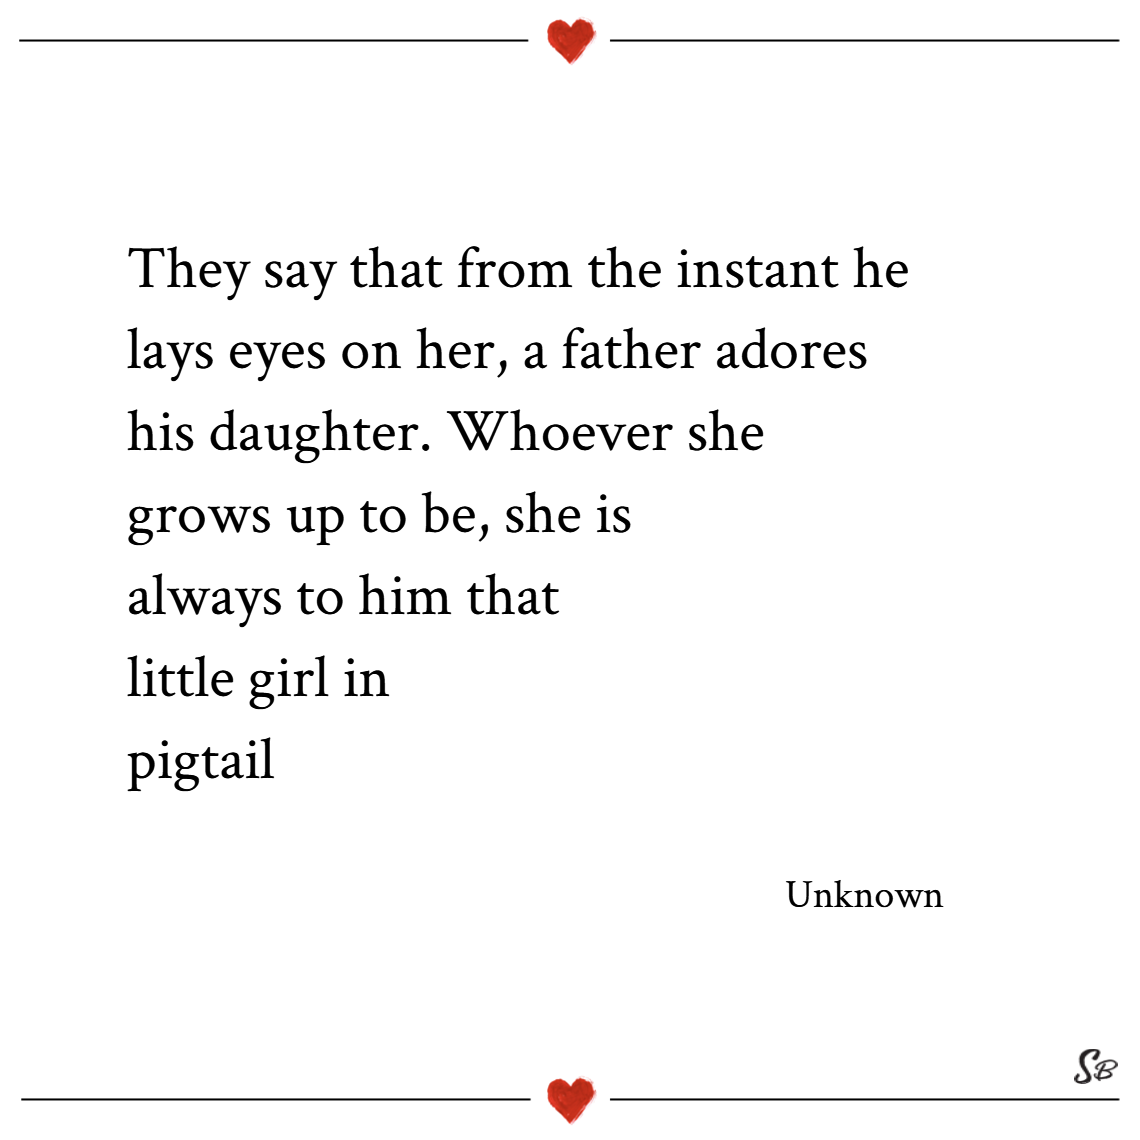 They say that from the instant he lays eyes on her, a father adores his daughter. whoever she grows up to be, she is always to him that little girl in pigtails. – unknown